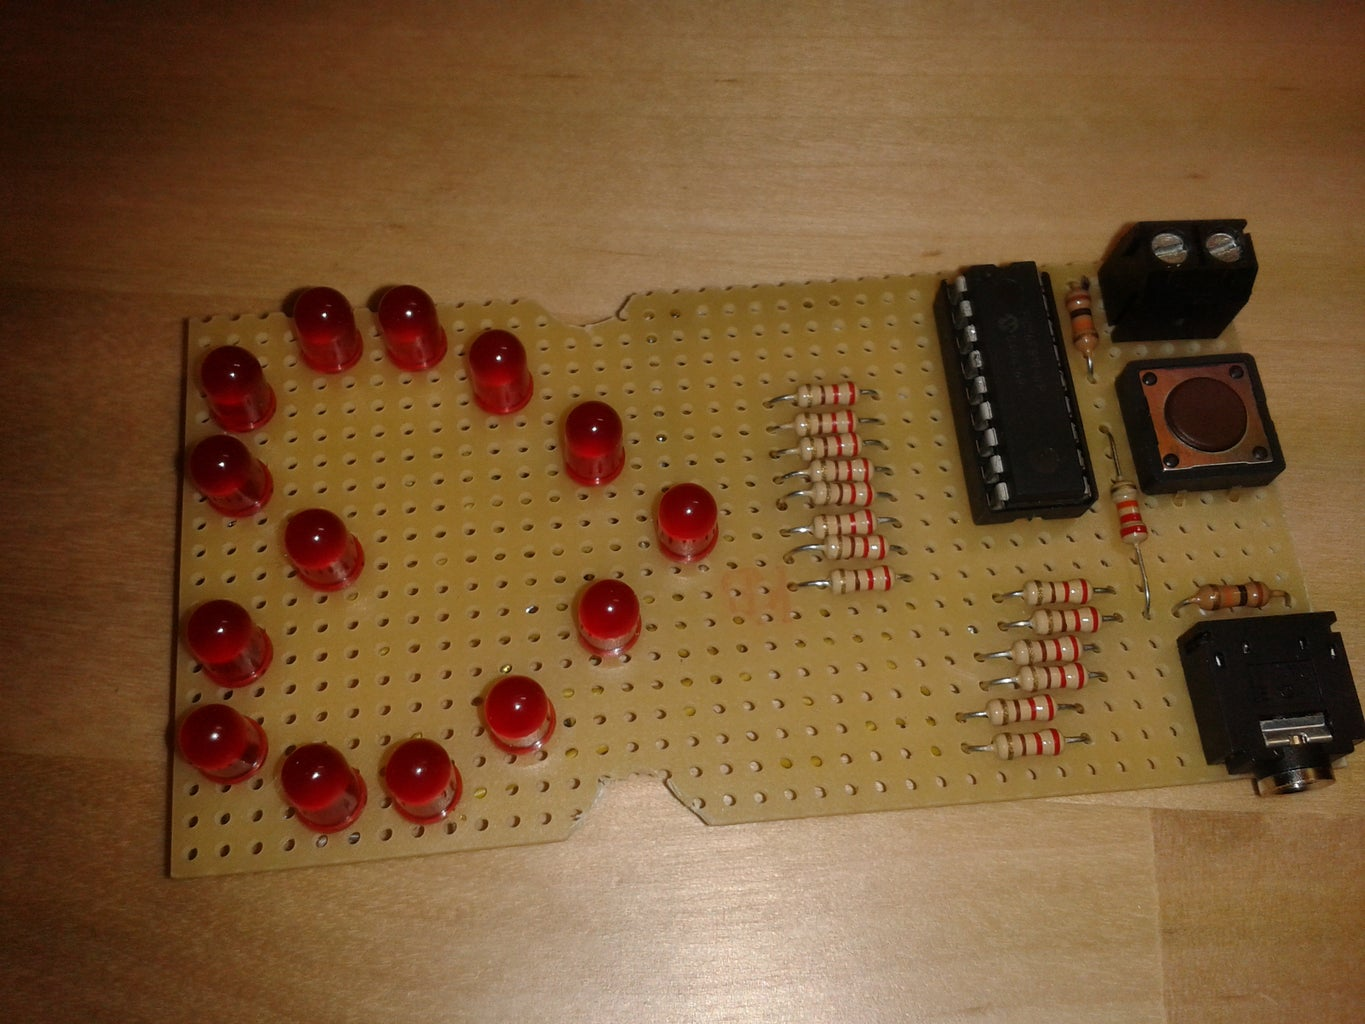 Circuit Design and Assembly